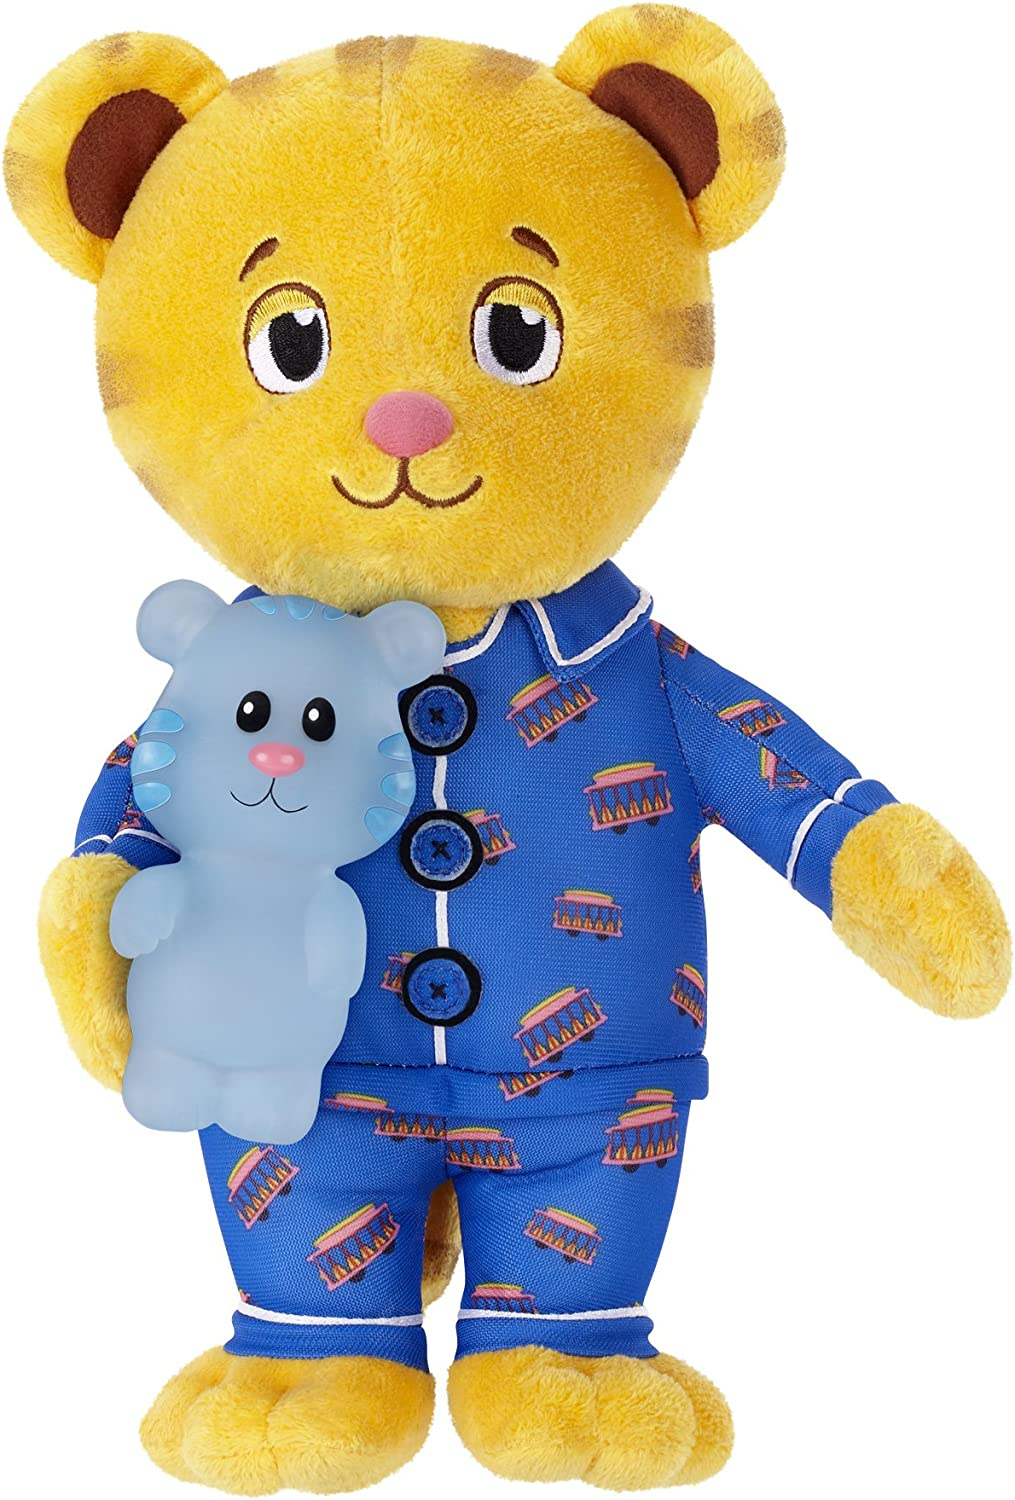 lo último Daniel Tiger's Neighborhood Goodnight Daniel and Tige-y Musical Juguete by by by Daniel Tiger's Neighborhood  tiempo libre